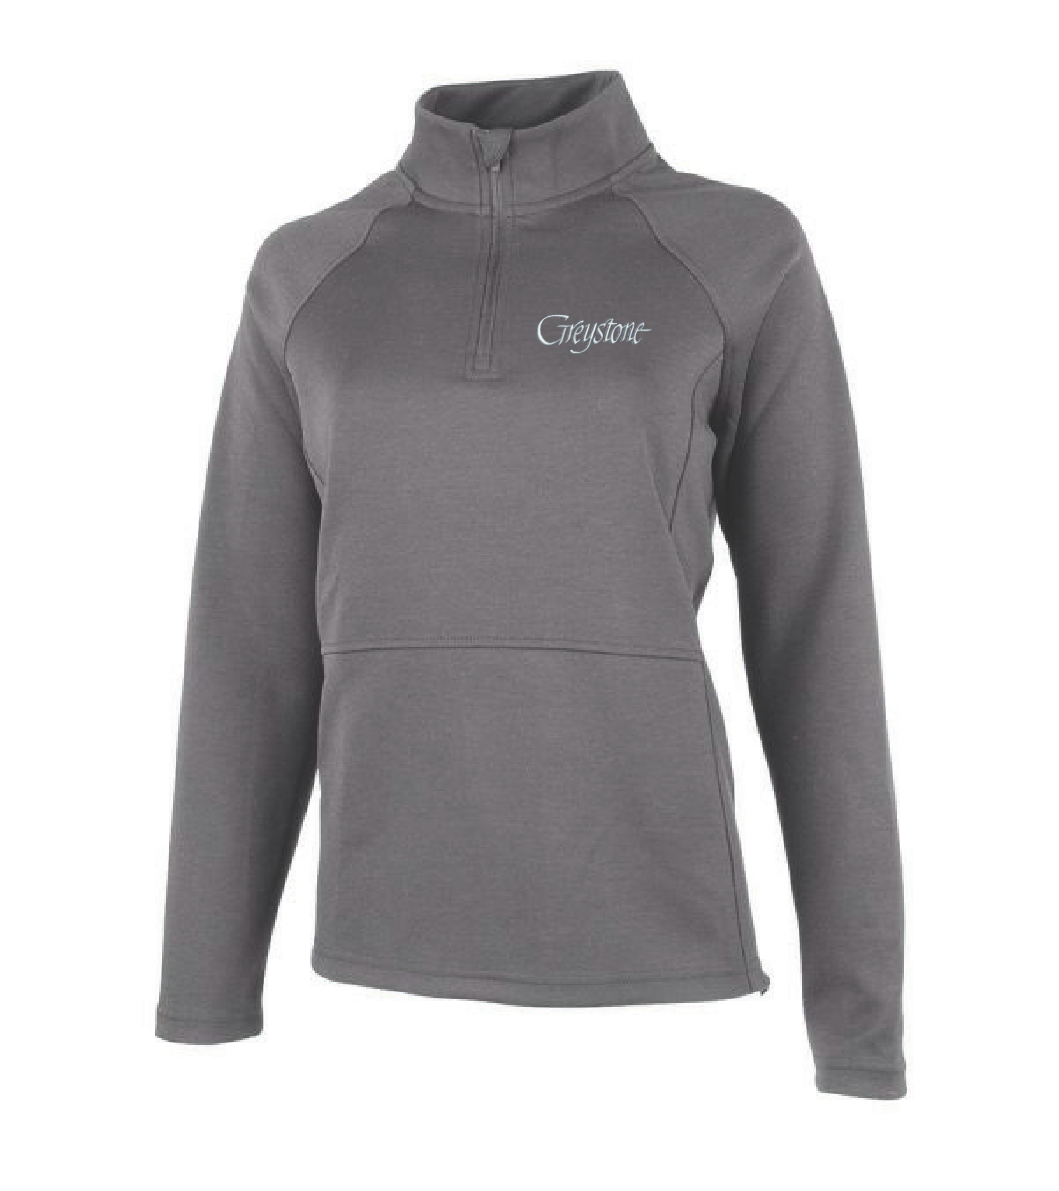 Picture of Grey Seaport Quarter Zip Pullover - Adult Small Only